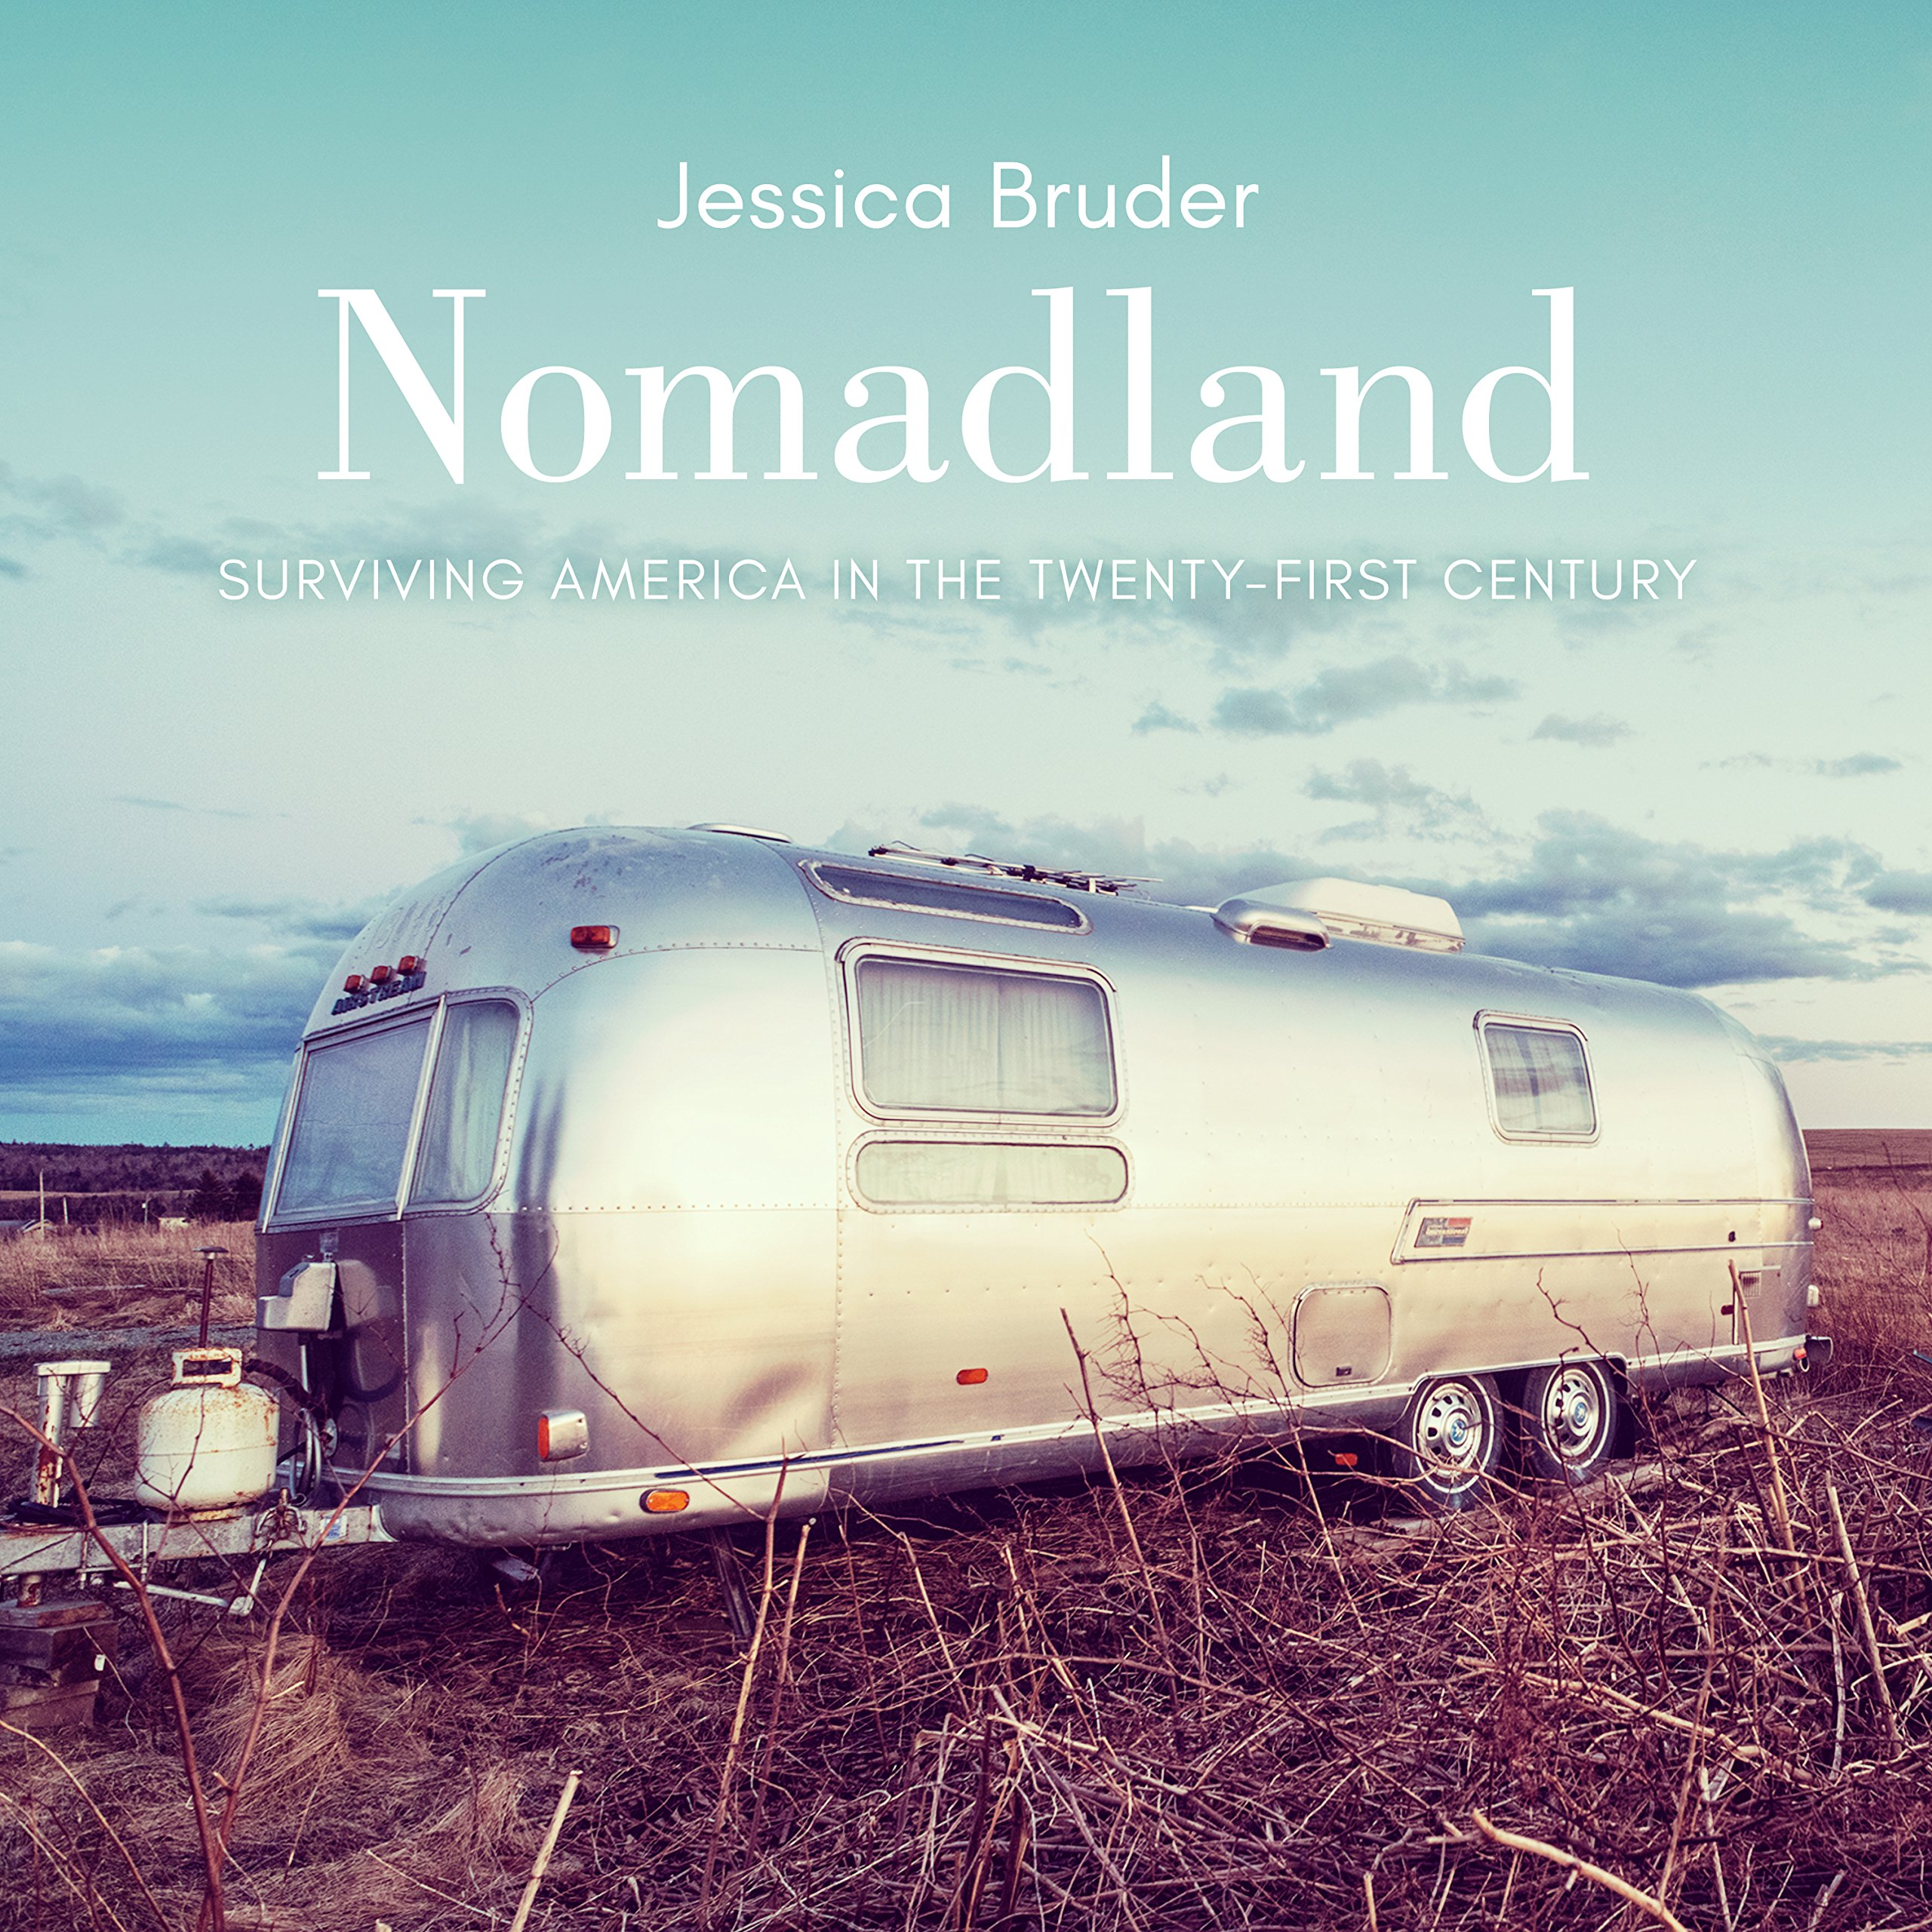 Nomadland Surviving America in the Twenty-First Century Jessica Bruder buch tipp s. link ˅ ˅